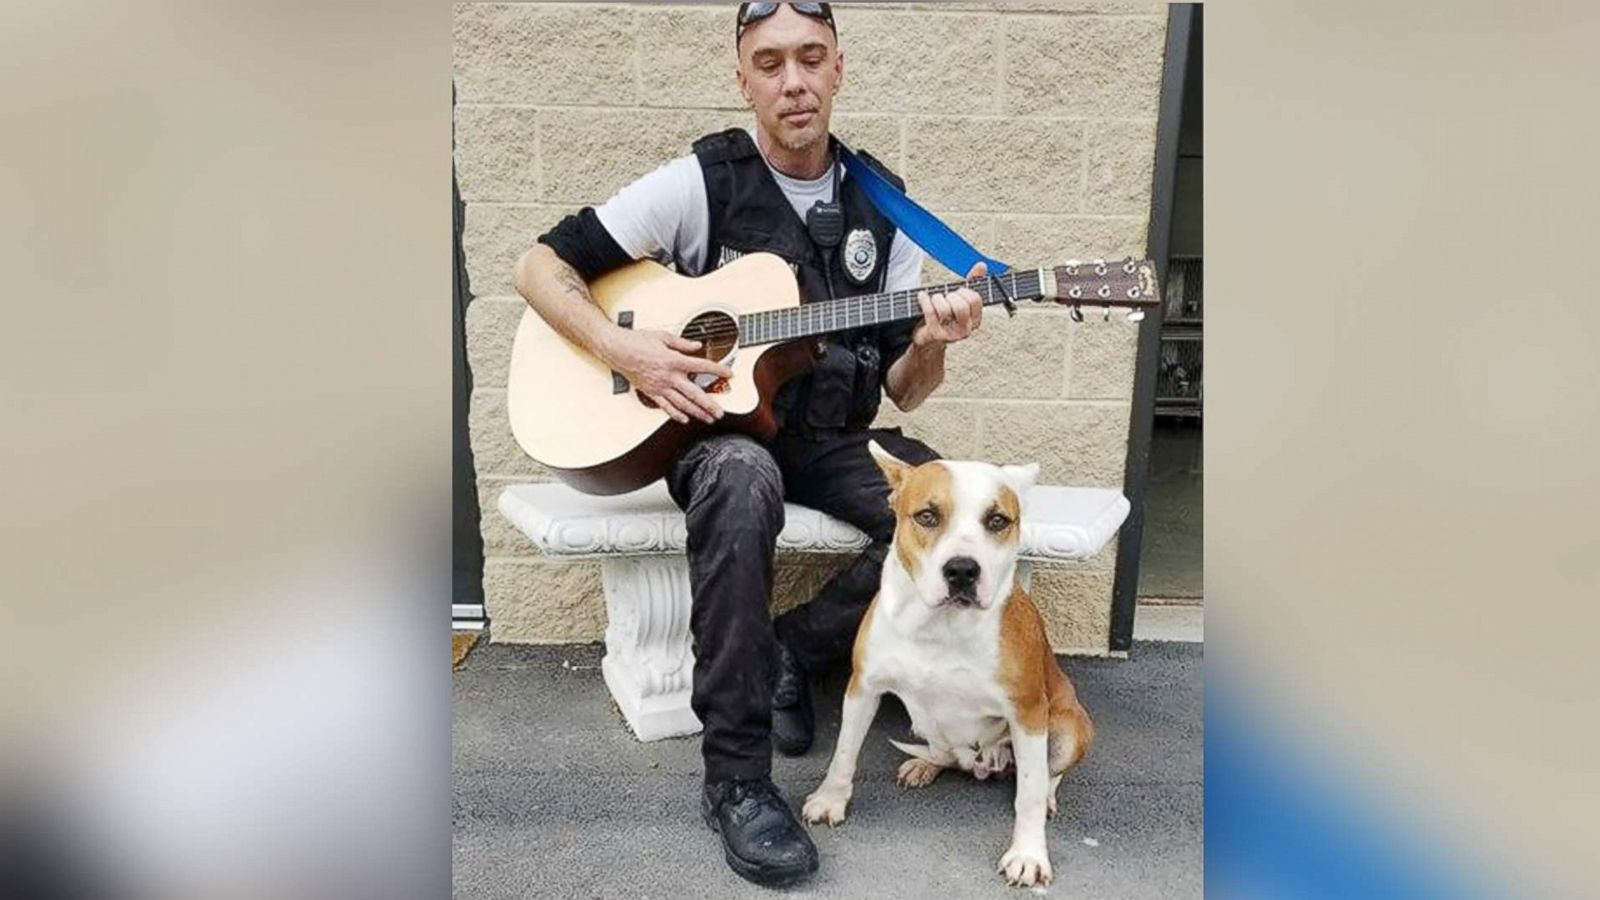 Simple Adoptable Dogs Have Reaction To Animal Control Guitarperformance Abc News Adoptable Dogs Have Reaction To Animal Control Vance County Animal Shelter Facebook Vance County Animal Shelter Music houzz 01 Vance County Animal Shelter